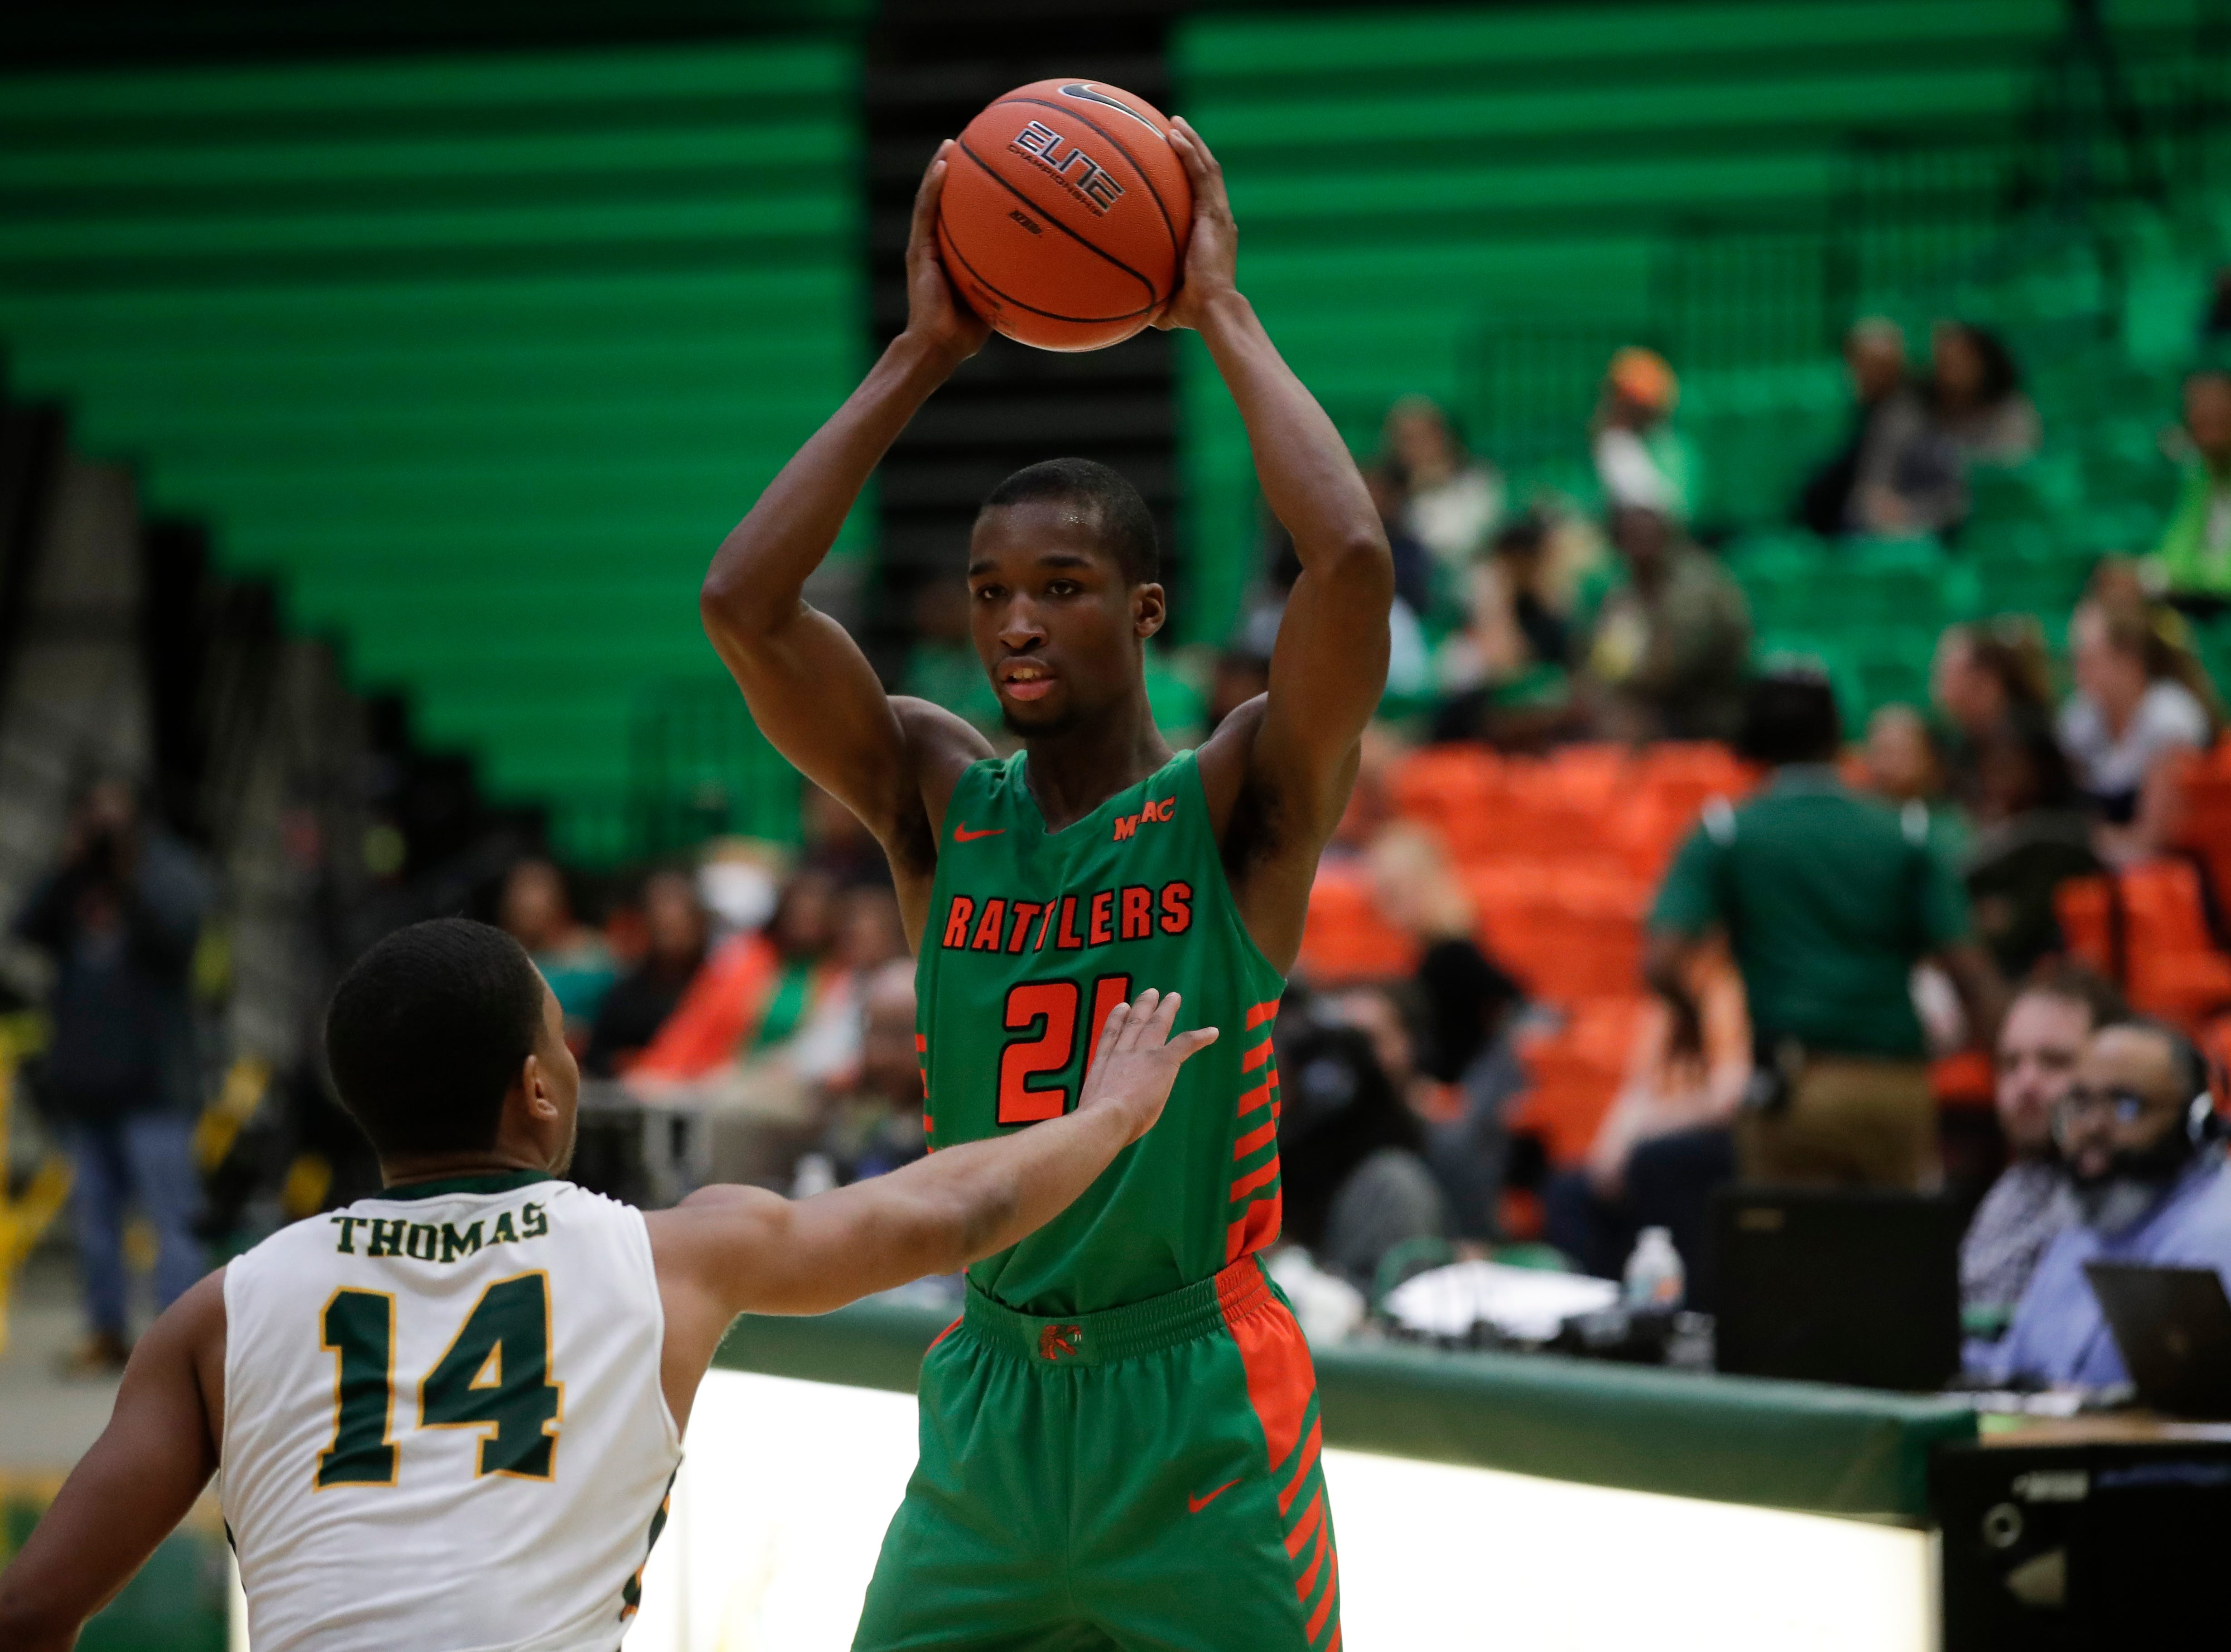 Florida A&M Rattlers guard Justin Ravenel (21) looks for an opening during a game between FAMU and Norfolk State at the Alfred Lawson Jr. Multipurpose Center Monday, Feb. 11, 2019.